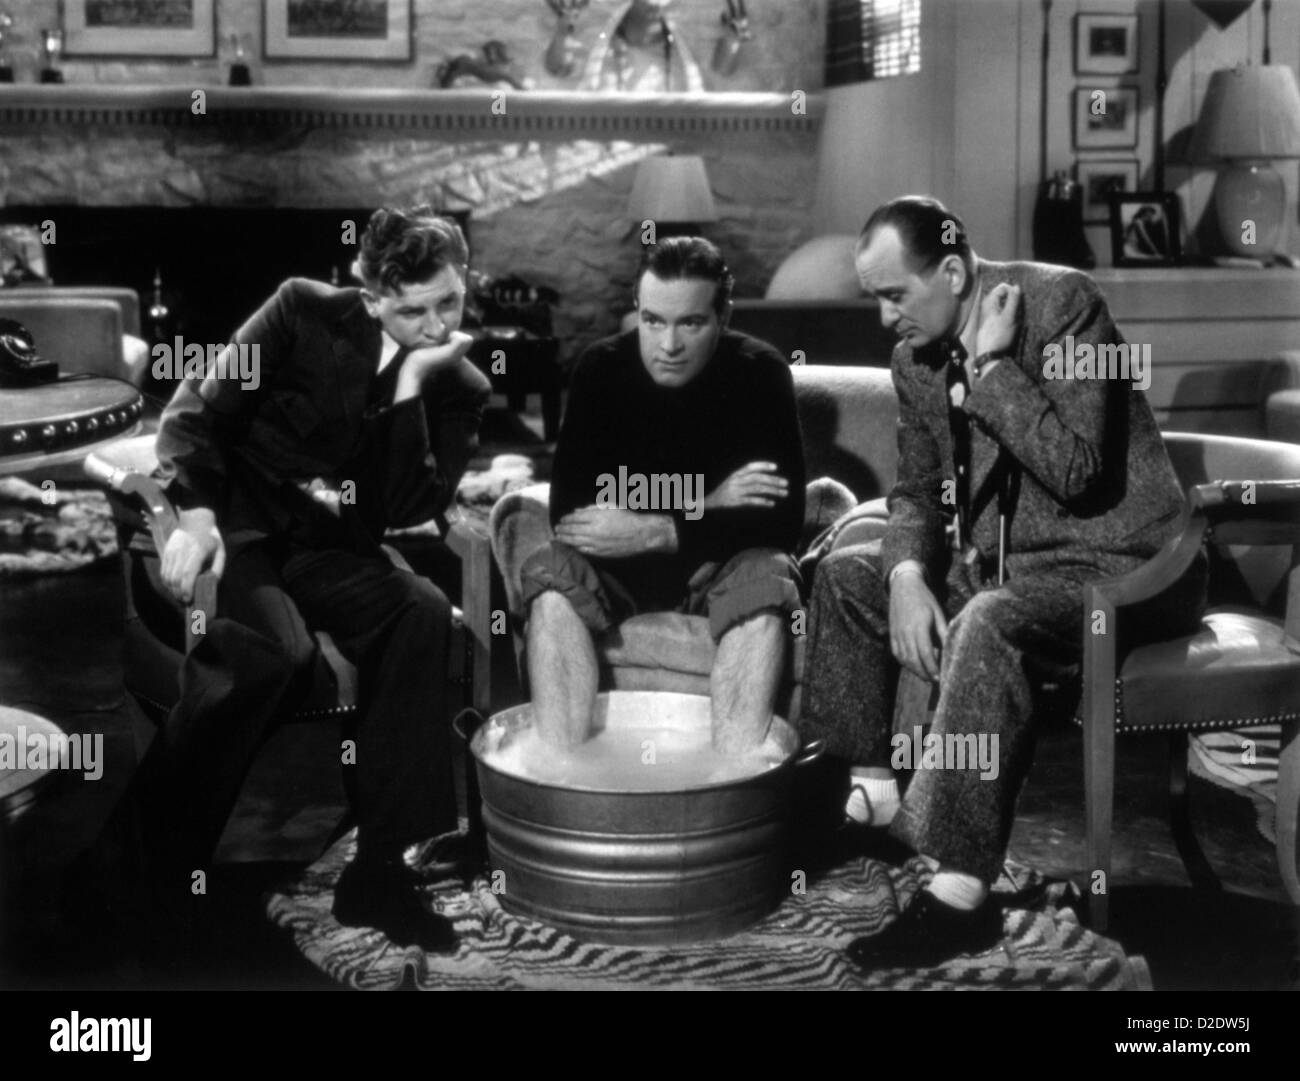 CAUGHT IN THE DRAFT (1941) BOB HOPE, DAVID BUTLER (DIR) CDFT 002 MOVIESTORE COLLECTION LTD - Stock Image